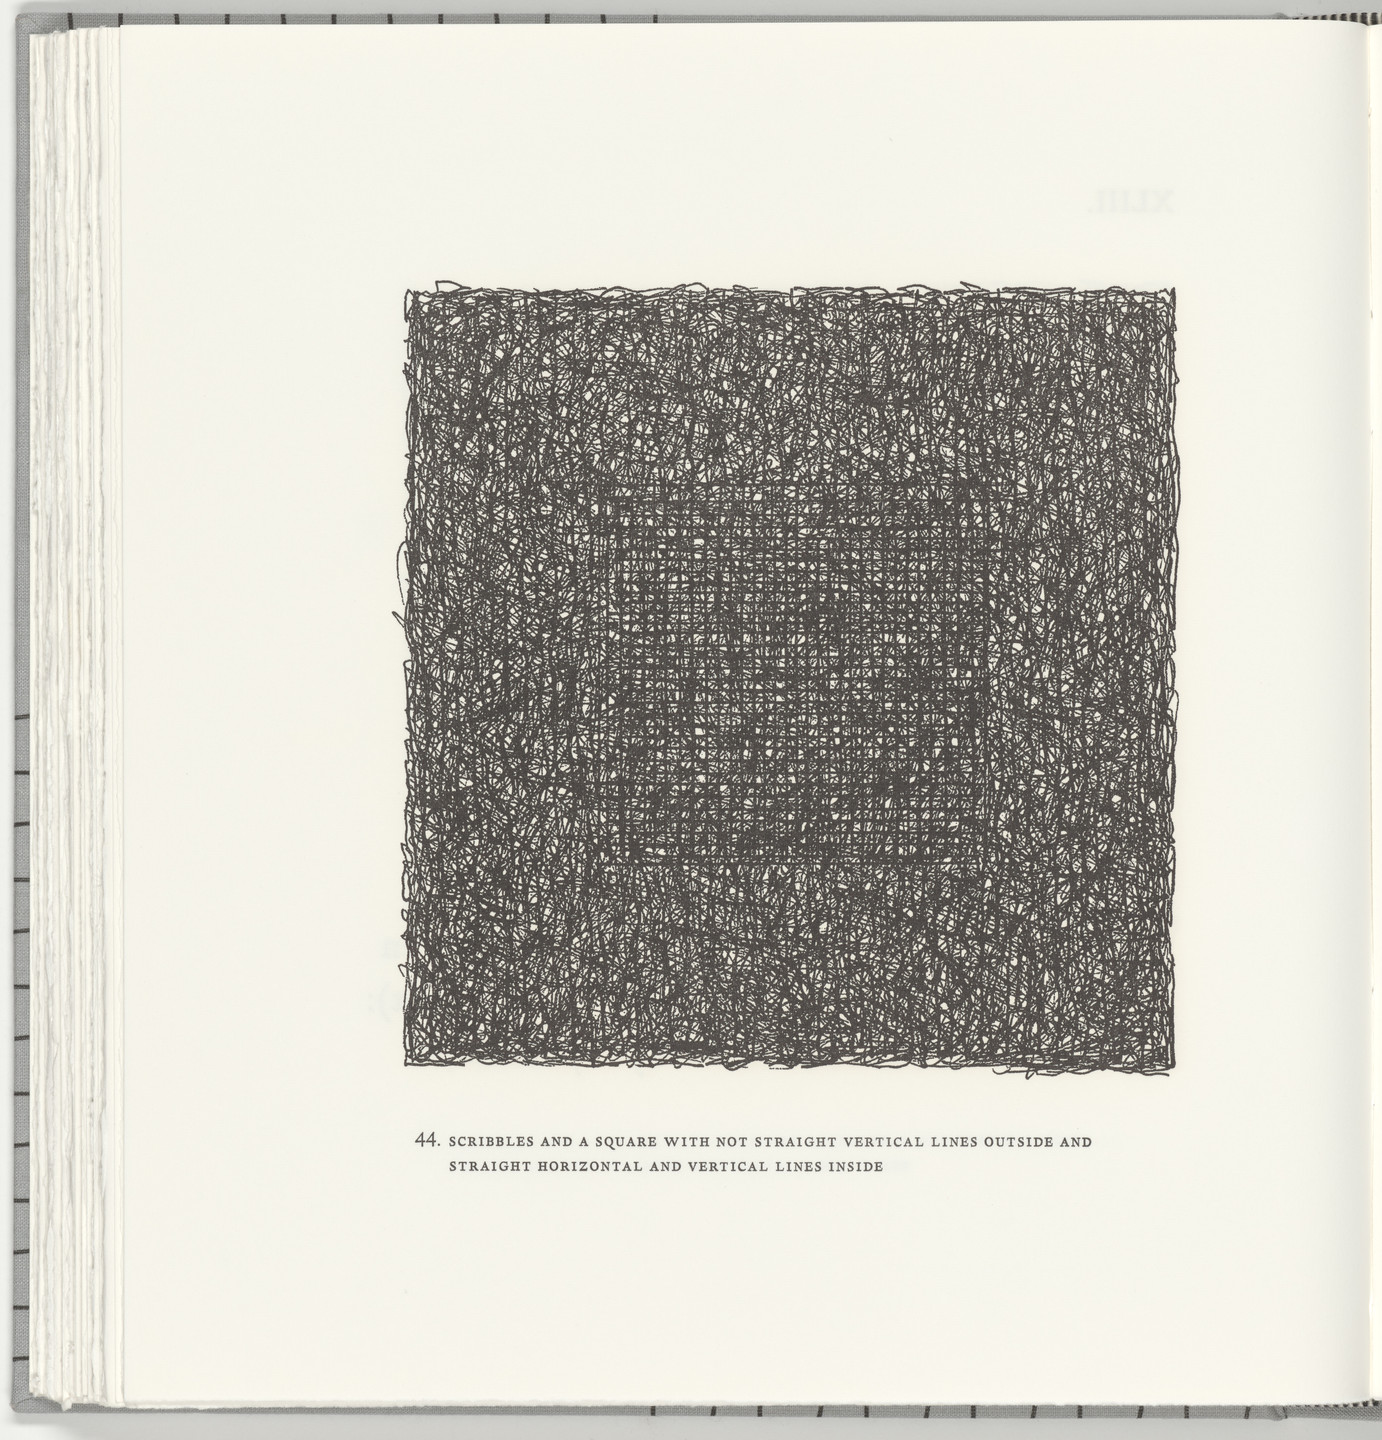 Sol LeWitt. Scribbles and a Square with Not Straight Vertical Lines Outside and Straight Horizontal and Vertical Lines Inside (plate 44) from Squarings. 2003